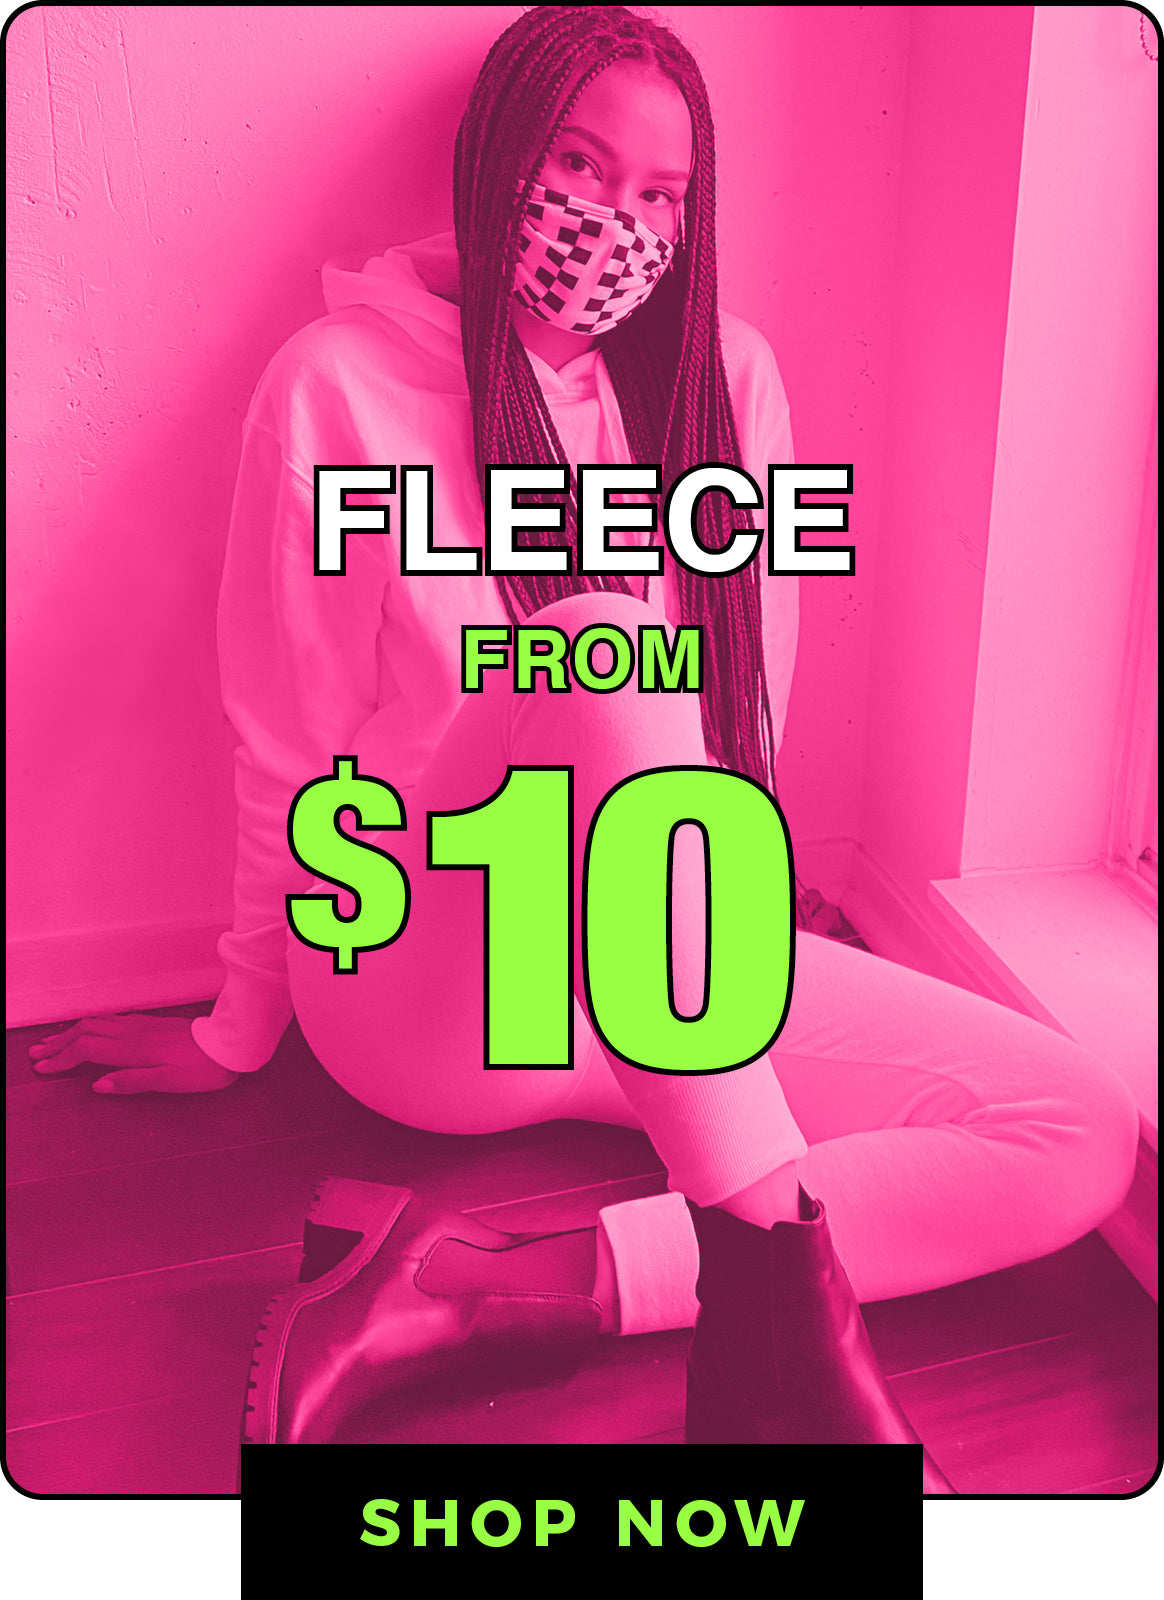 Charlotte Russe | Fleece from $10 - Shop Now